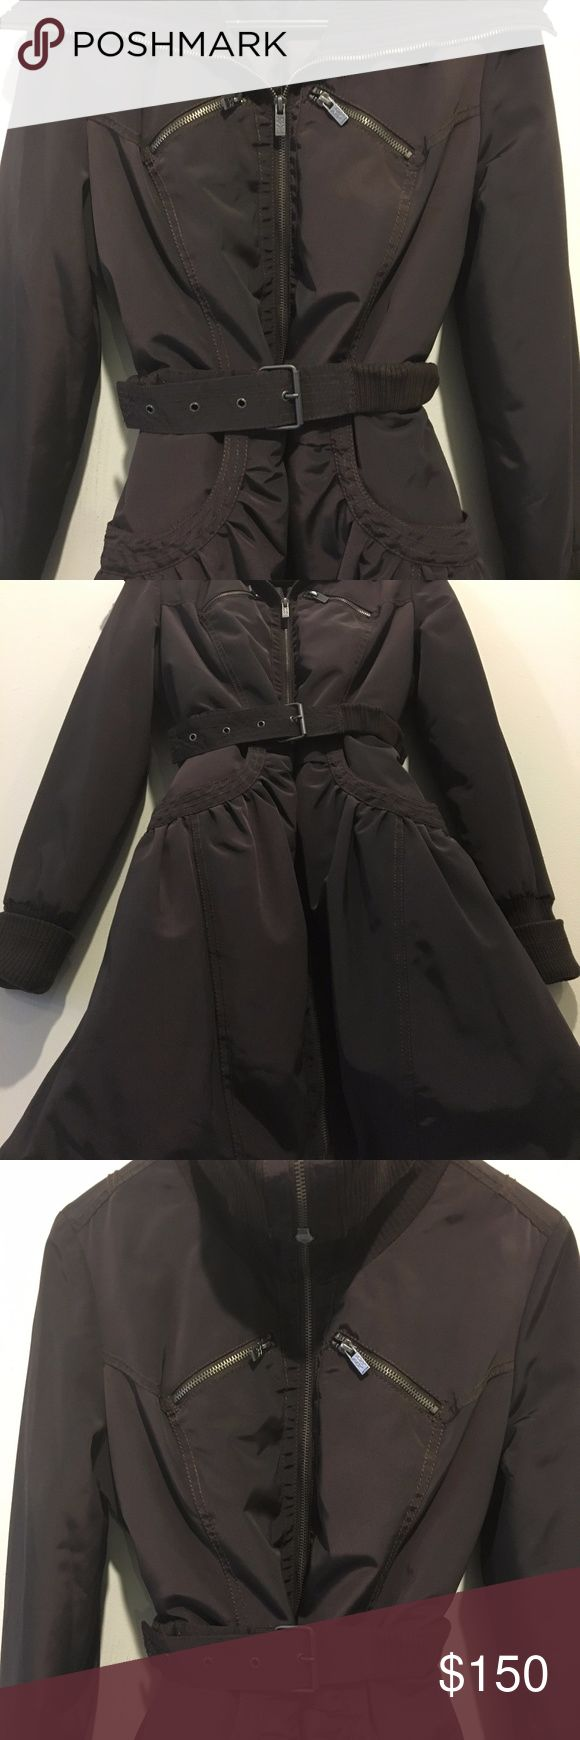 DKNY Active Women Winter Jacket/Coat Never Worn Beautiful chocolate brown color. Extremely flattering silhouette -- you can wear it with the provided belt for more fitted shape or without one for a looser look (see pix). Great collar, again can be worn in different ways like on the pix. Good quality/high end zippers and detailing around pockets/cuffs, etc. Perfect Condition. Never Worn.  Originally purchased for $209. Selling for $150. THANKS! DKNY Active Jackets & Coats Puffers